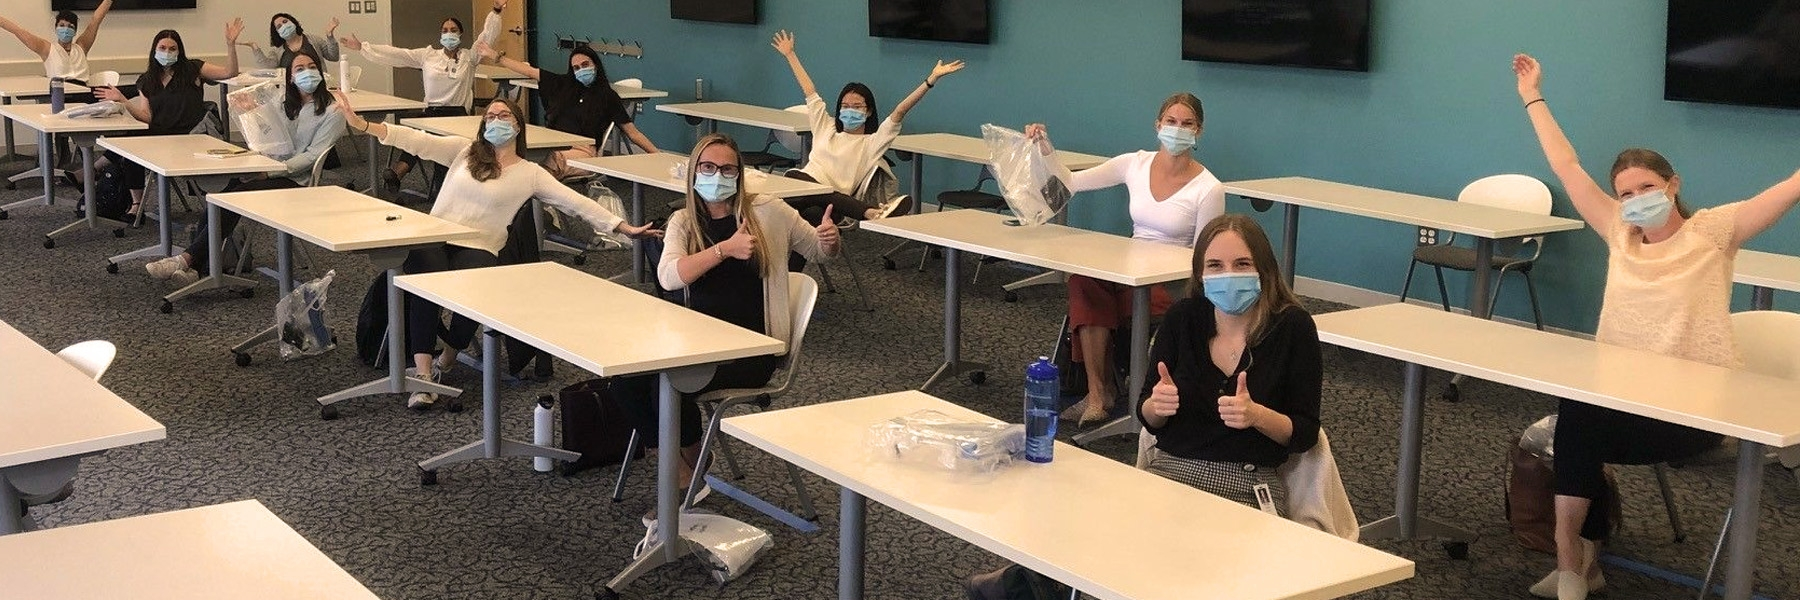 Students socialy distanced in a classroom with masks wave to the camera